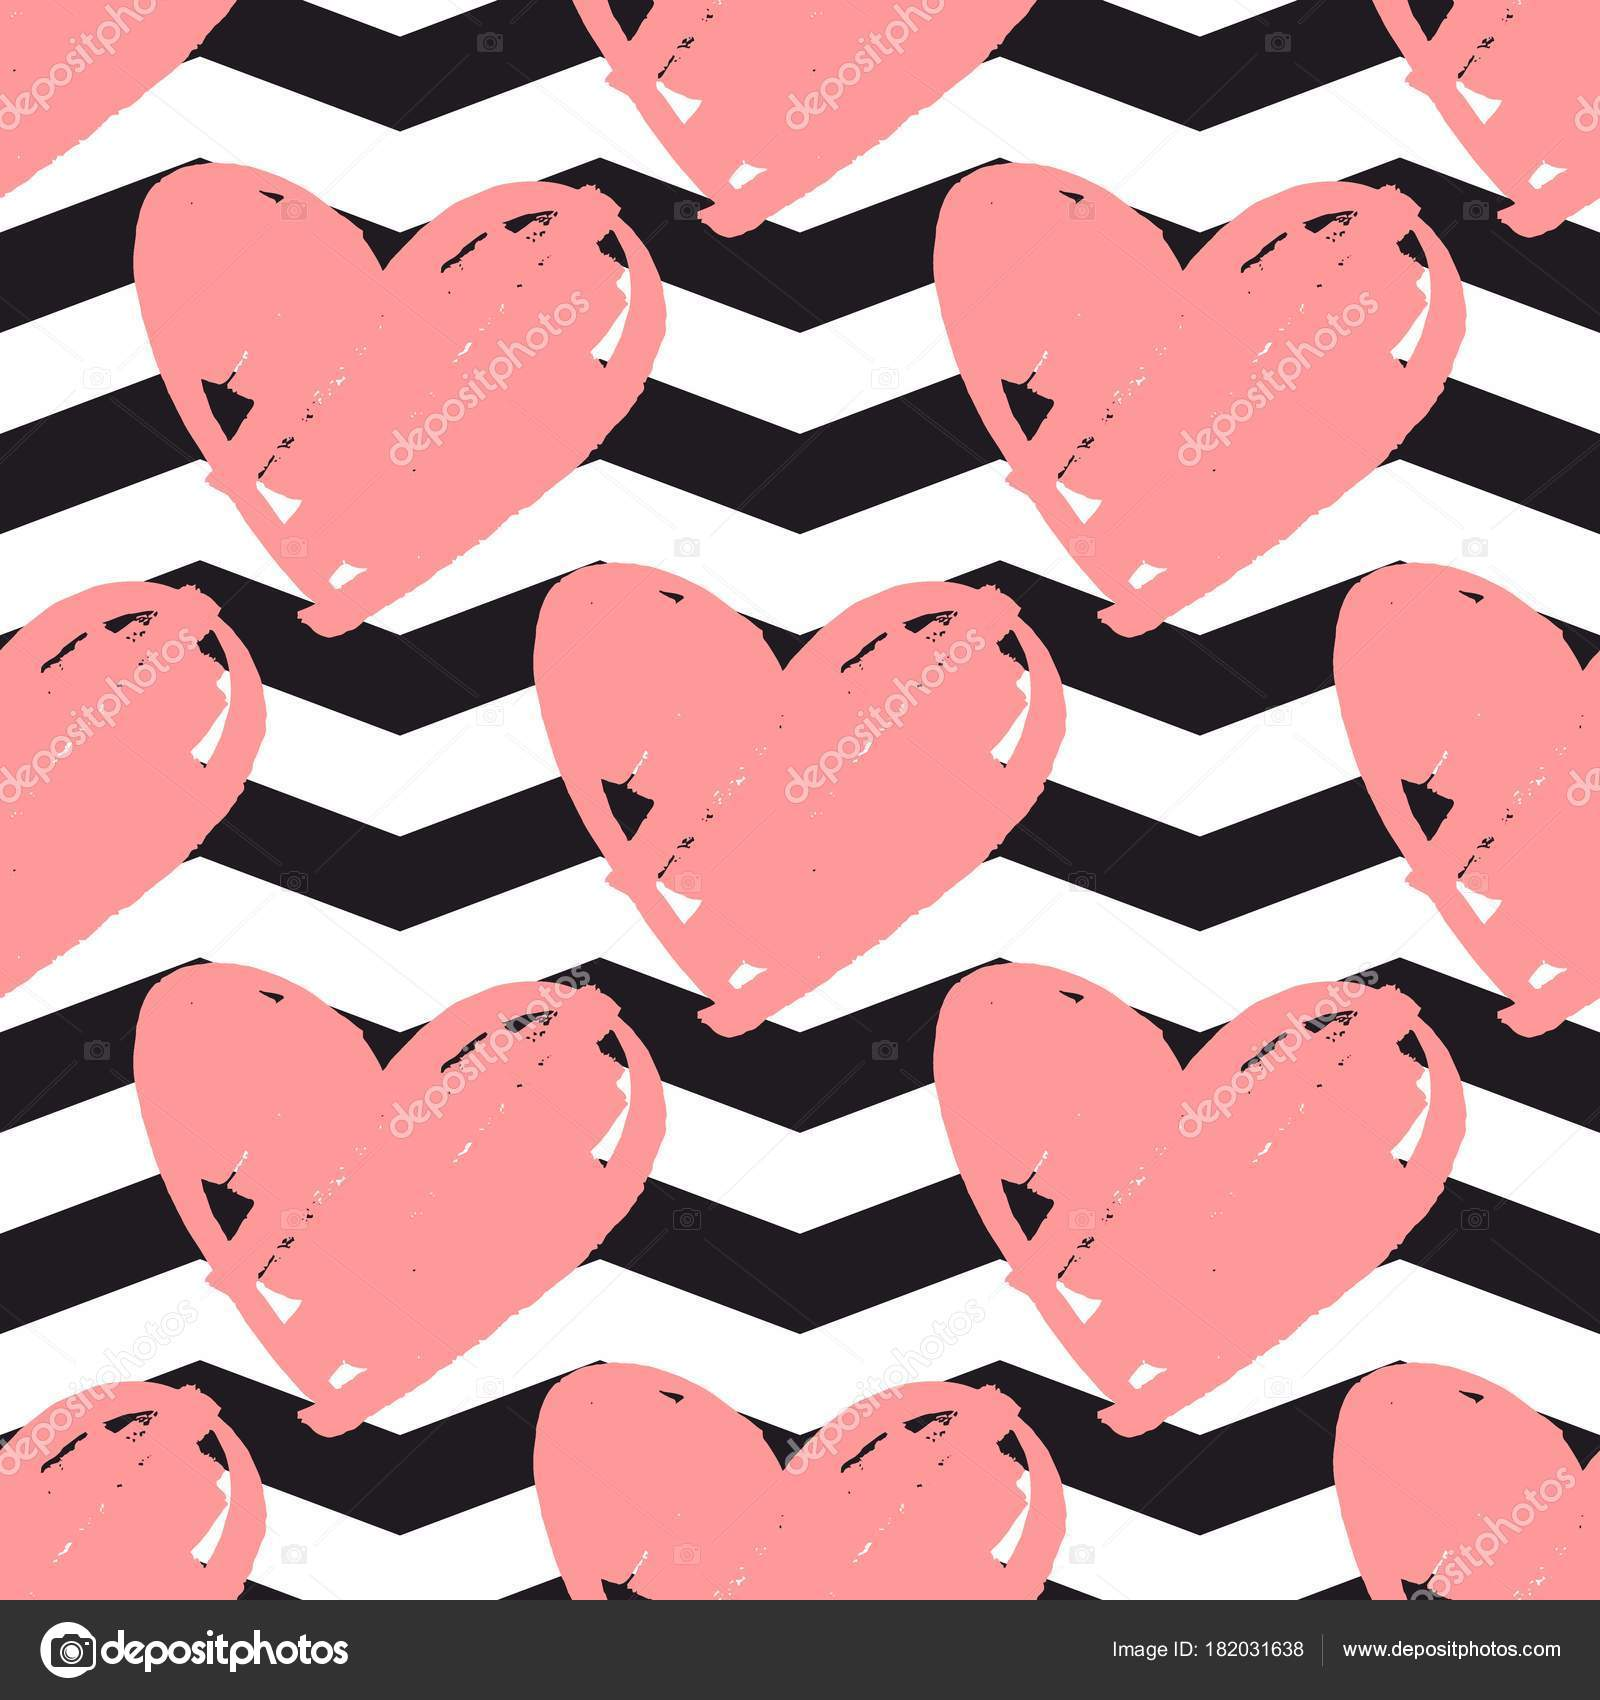 Tile Vector Pattern Pink Hearts Black White Chevron Background